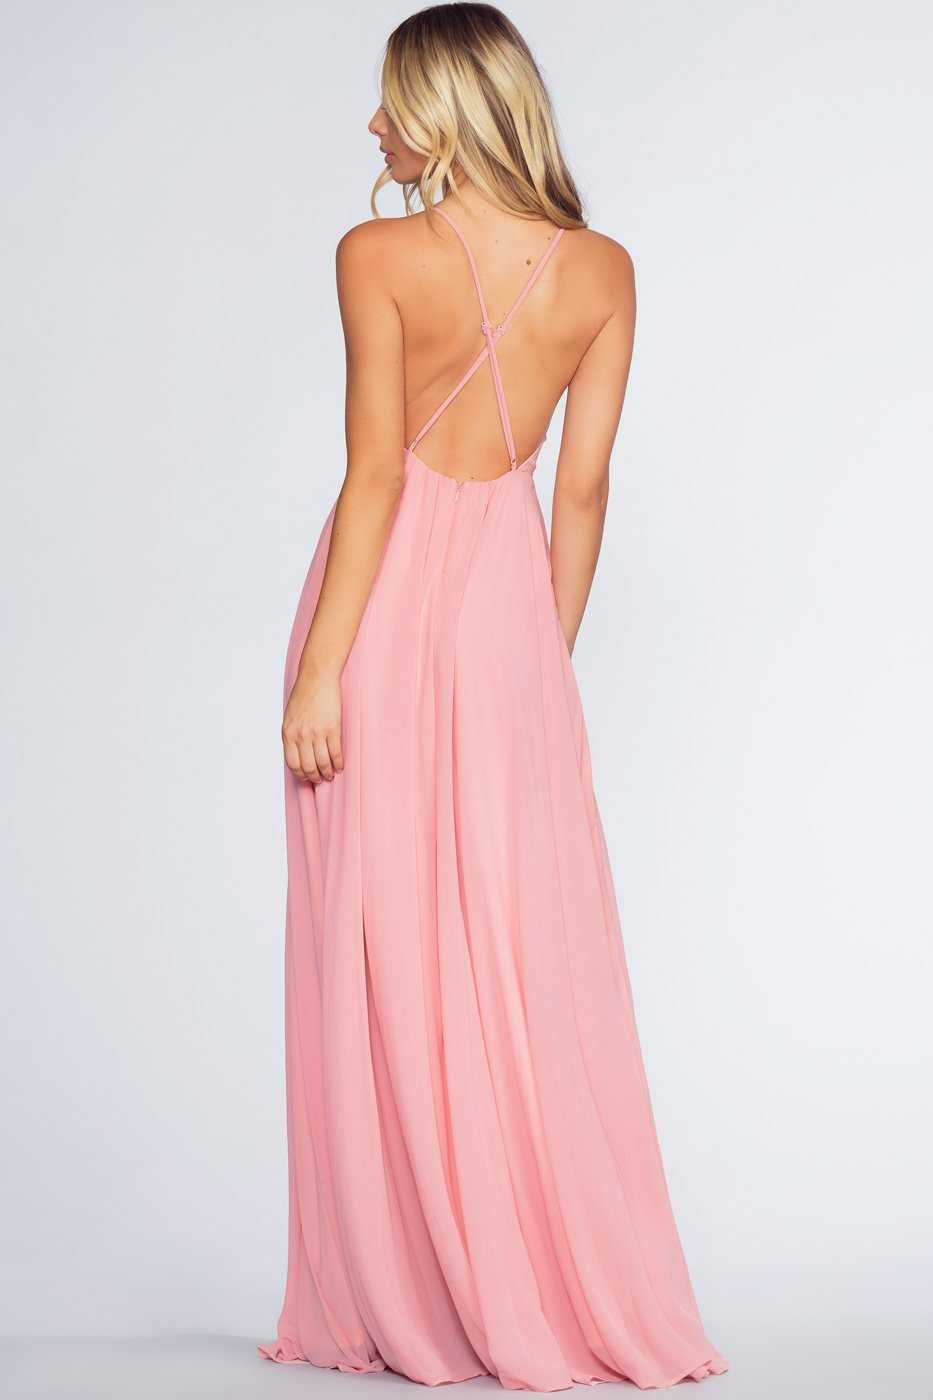 Dresses - Aurora Maxi Dress - Blush